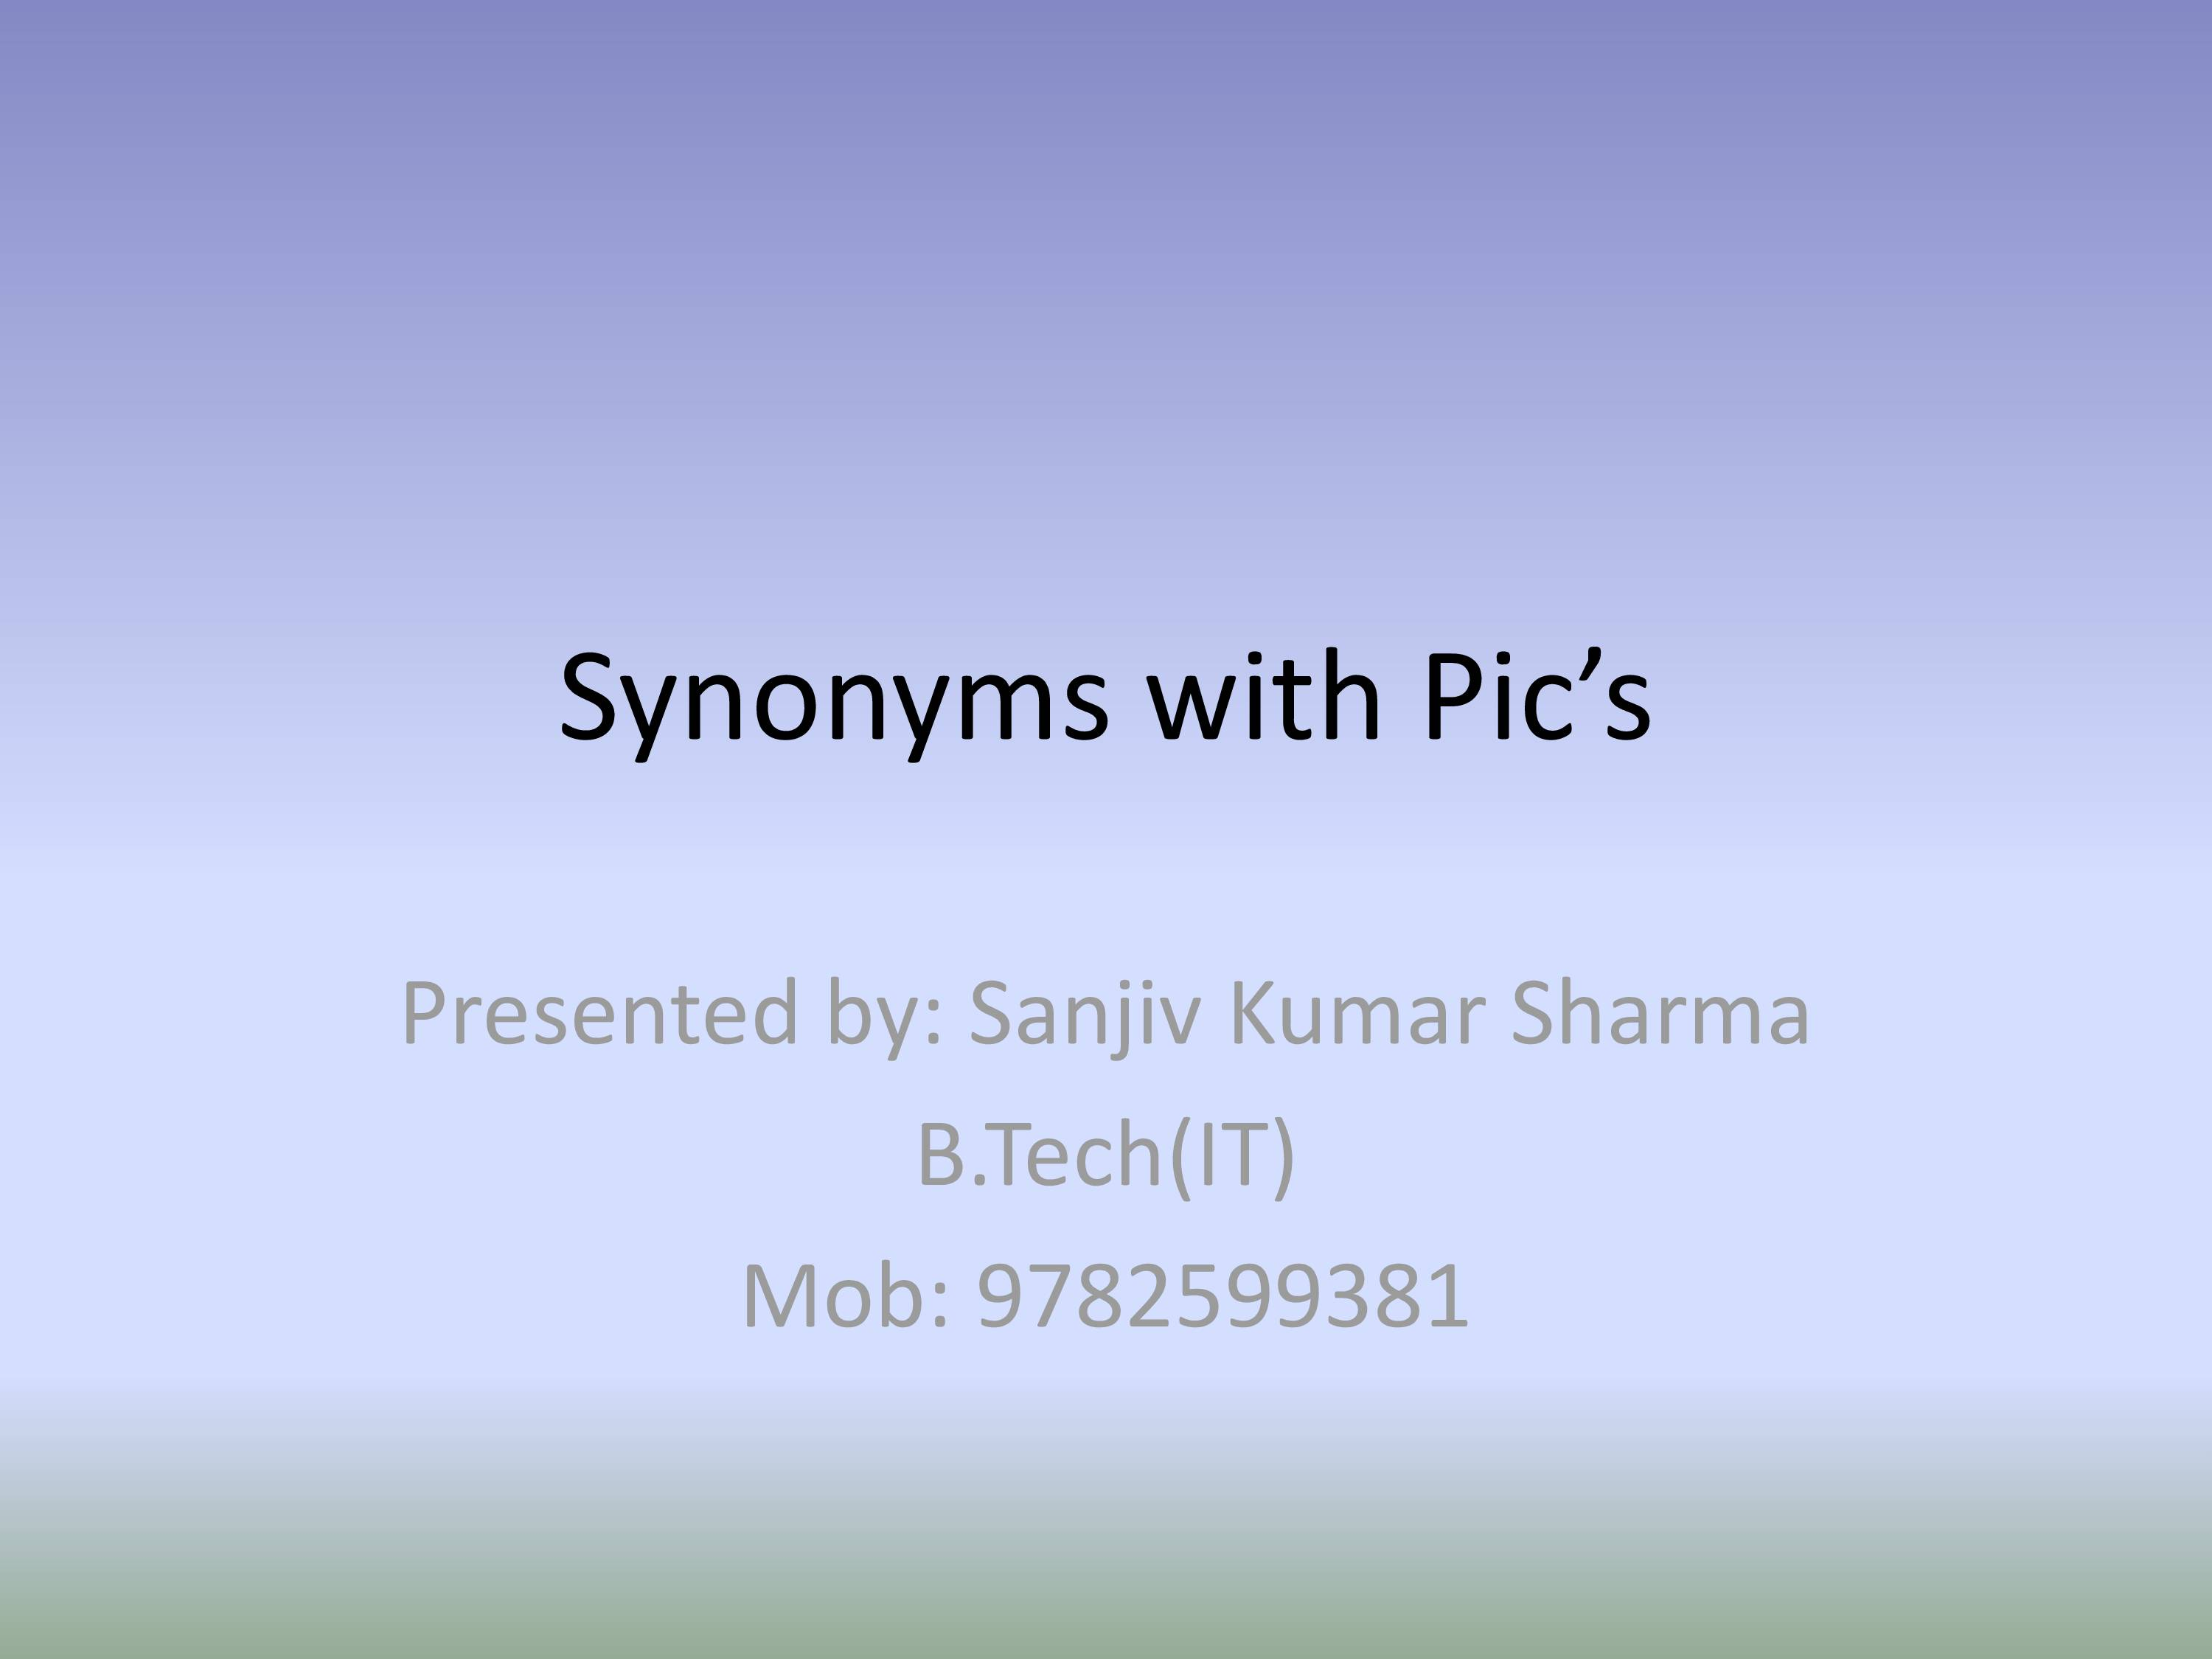 PPT on Synonym's elaboration with Pics